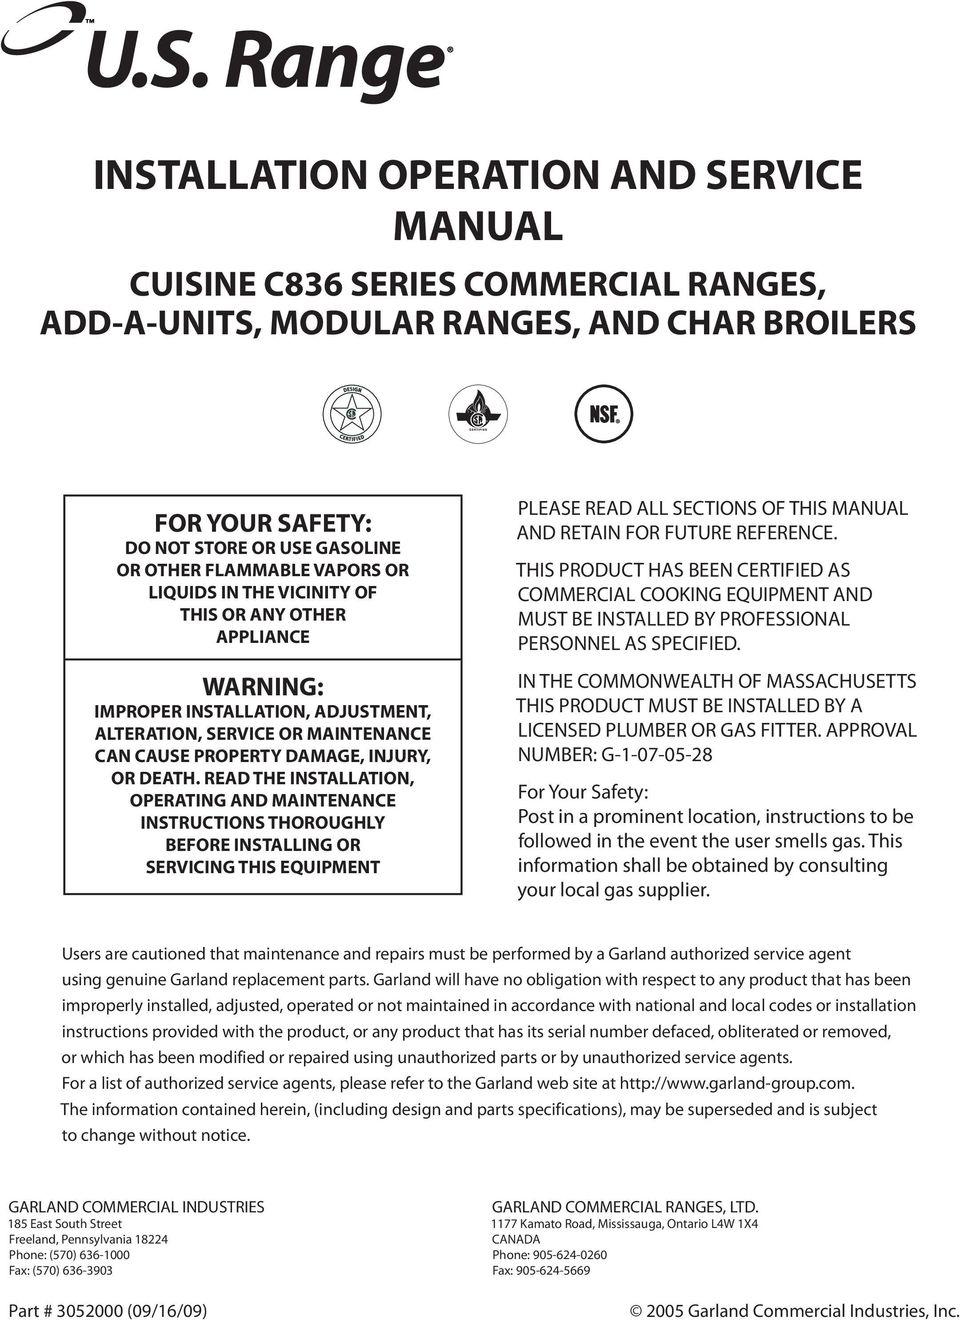 READ THE INSTALLATION, OPERATING AND MAINTENANCE INSTRUCTIONS THOROUGHLY BEFORE INSTALLING OR SERVICING THIS EQUIPMENT PLEASE READ ALL SECTIONS OF THIS MANUAL AND RETAIN FOR FUTURE REFERENCE.